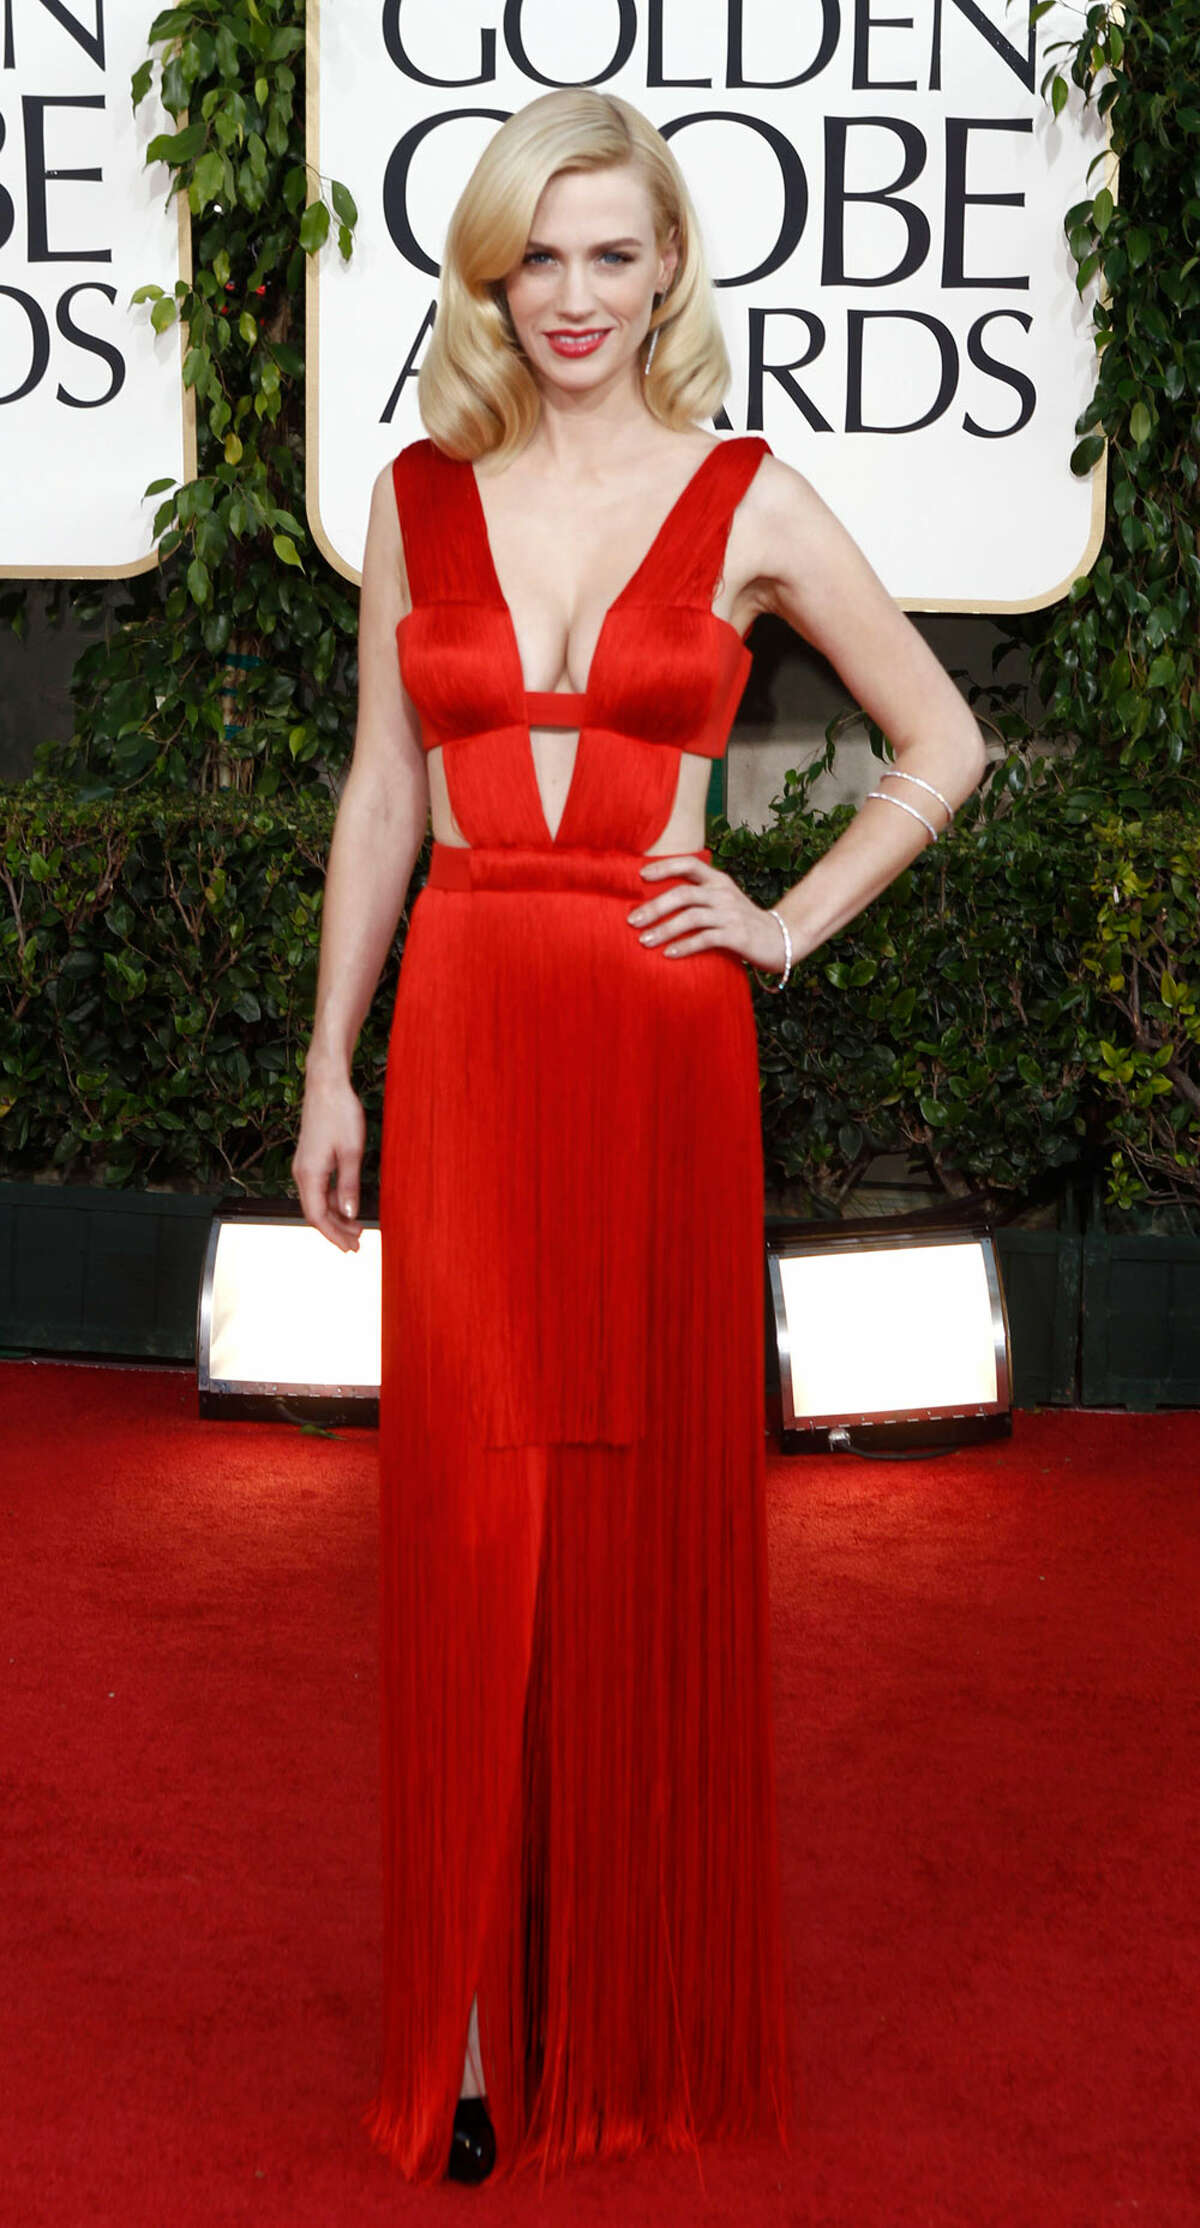 RED ALERT: January Jones, always daring on the red carped, rocked the most revealing gown of the night: a red fringed gown by Atelier Versace. Her Grace Kelly hair and red lips were perfection. - Michael Quintanilla MATT SAYLES / ASSOCIATED PRESS